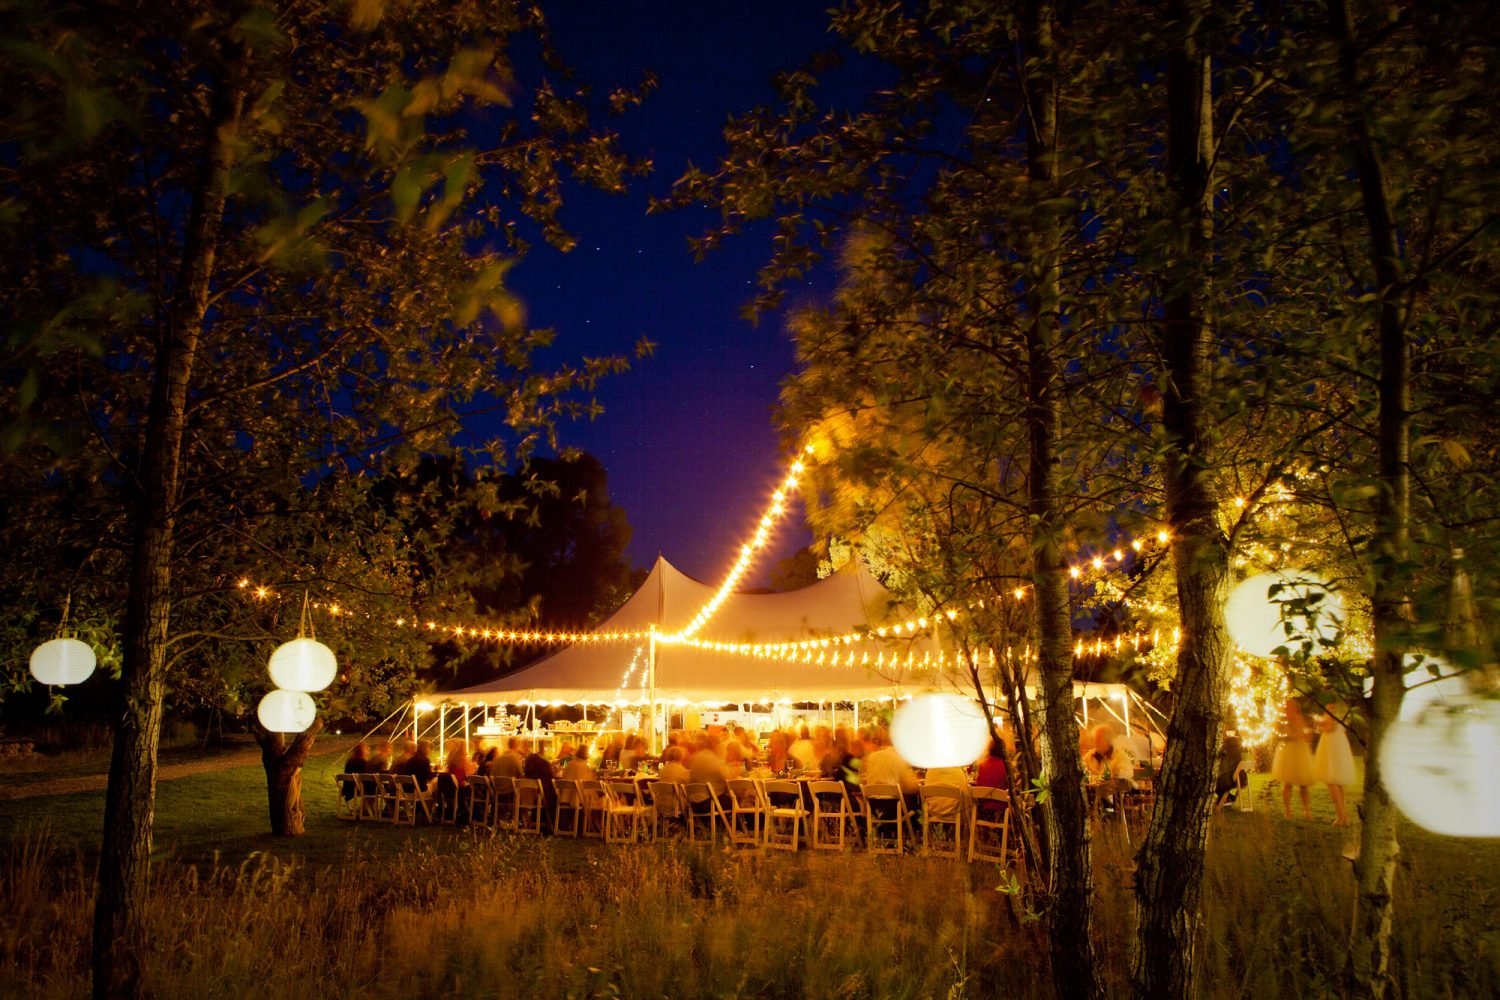 A tent wedding in the Animas Valley of Durango, Colorado